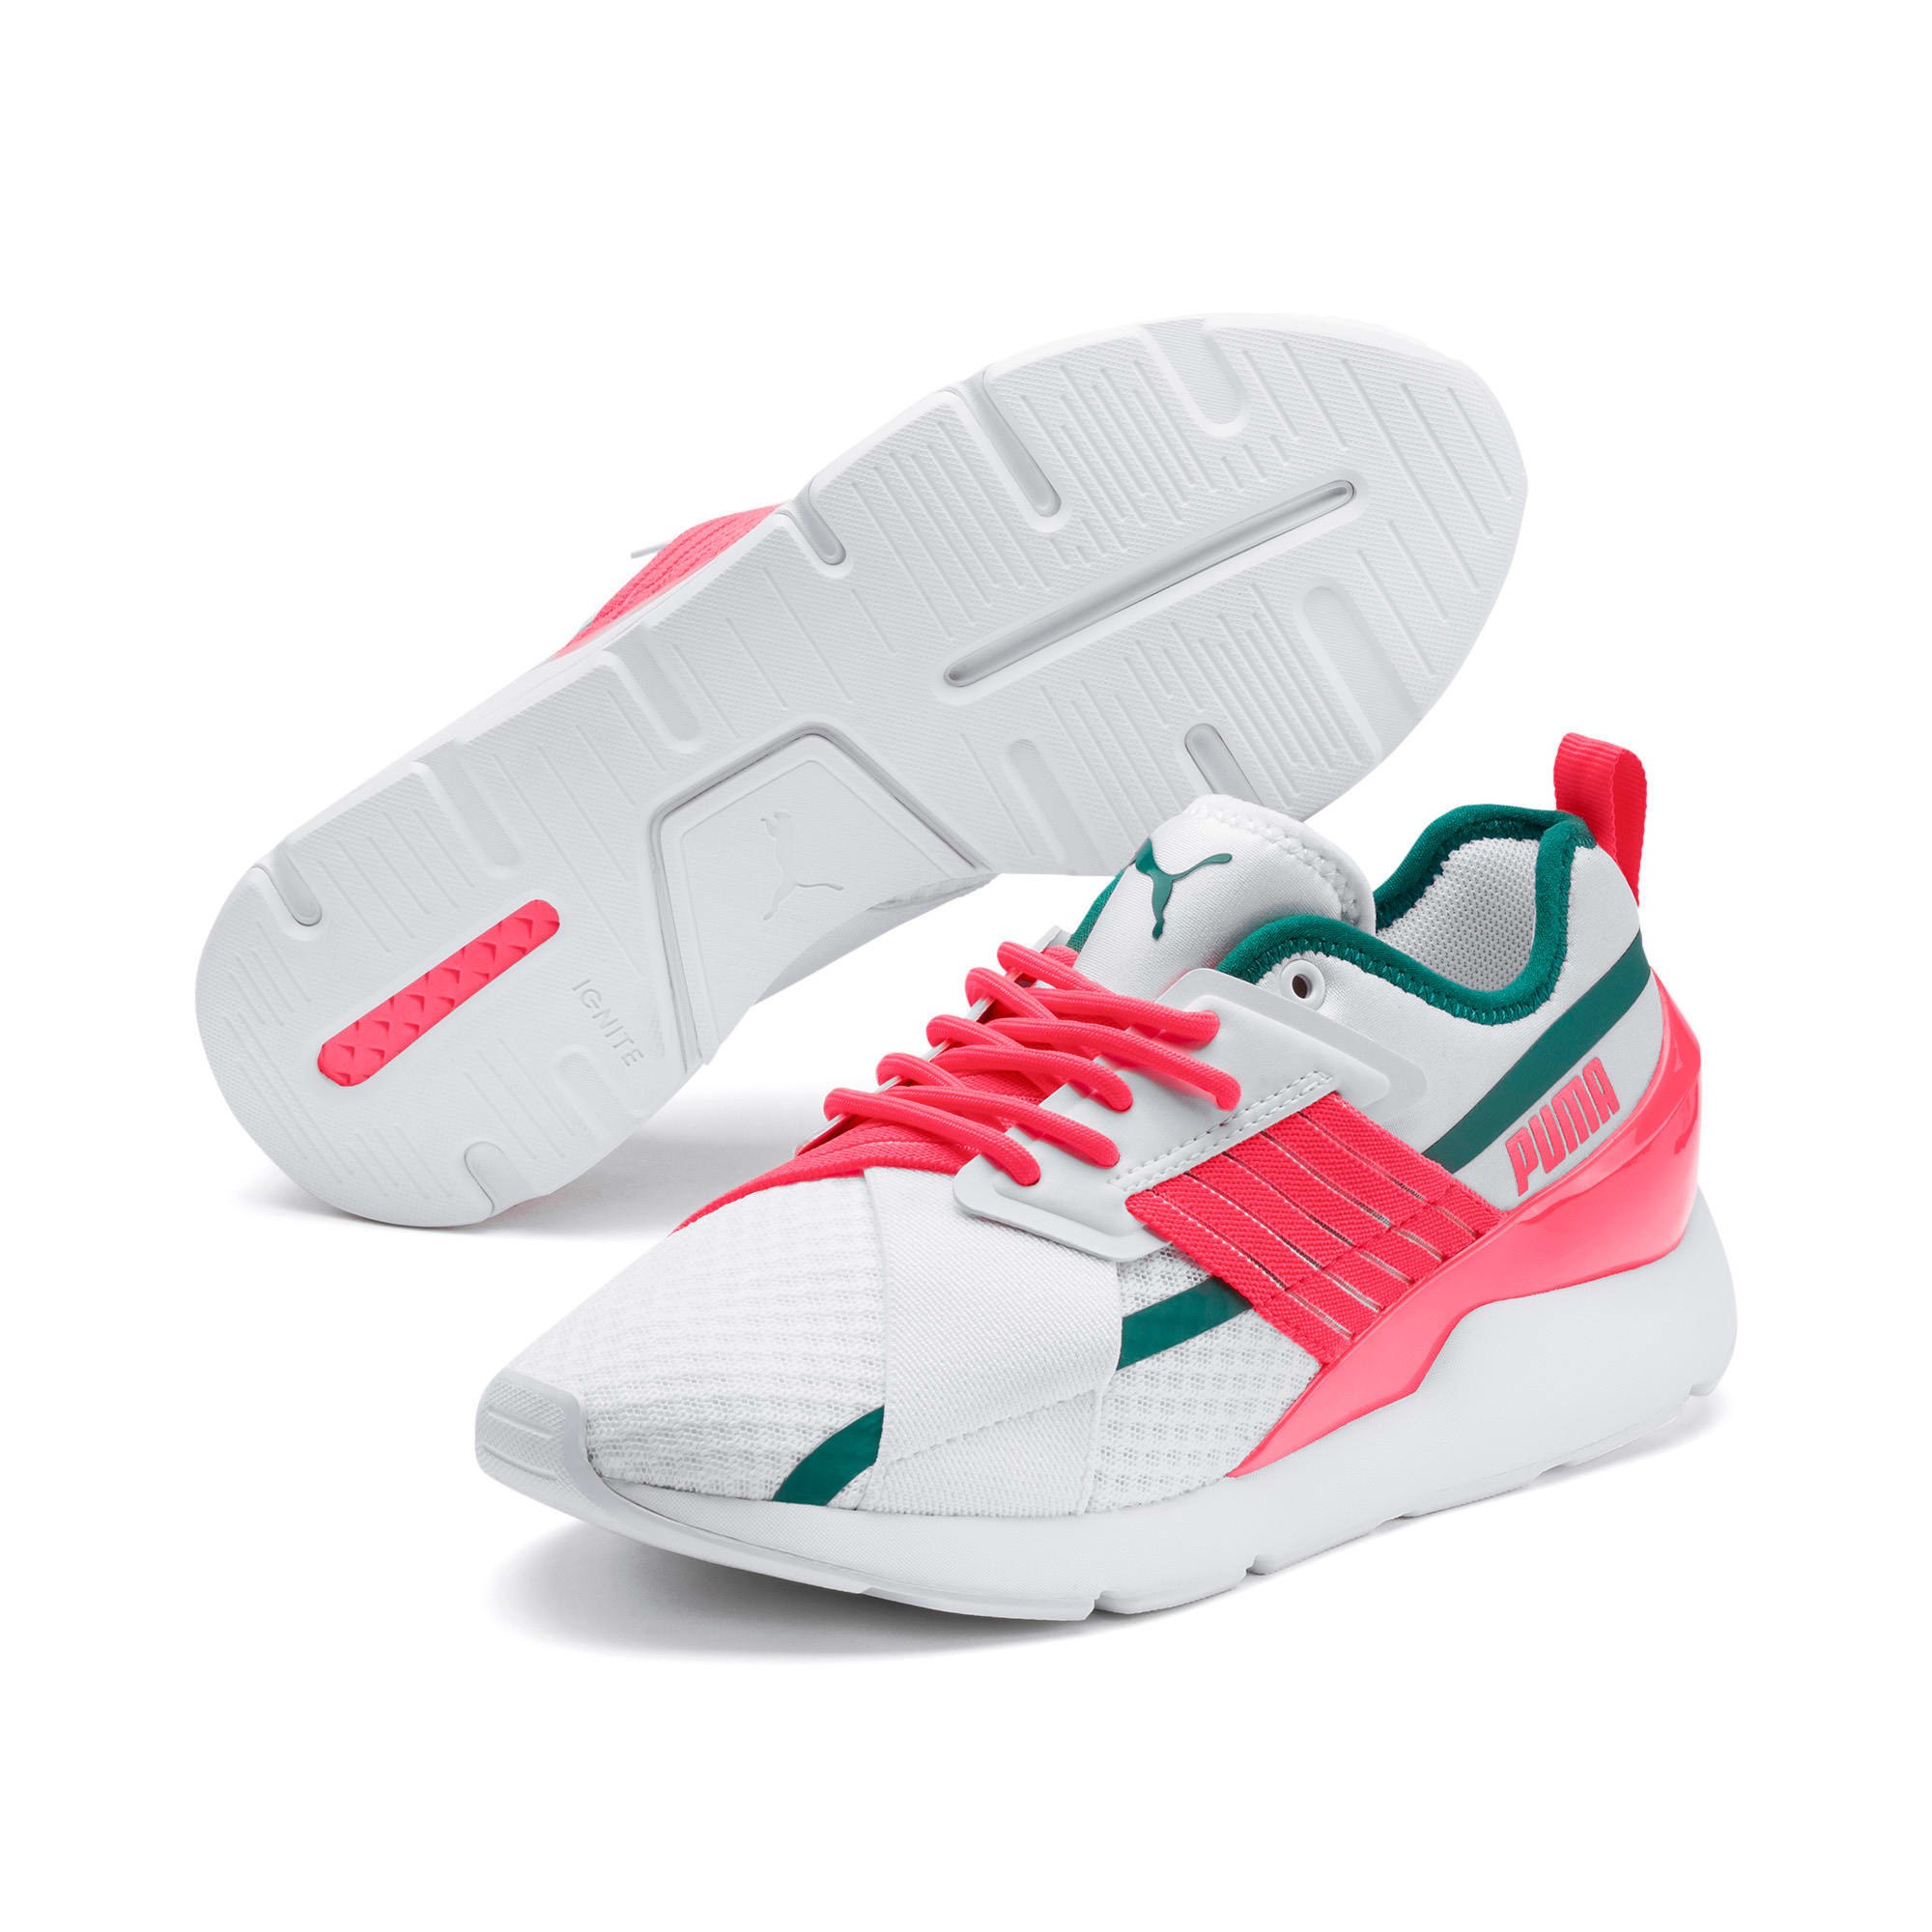 Thumbnail 3 of Muse X-2 Women's Trainers, Puma White-Pink Alert, medium